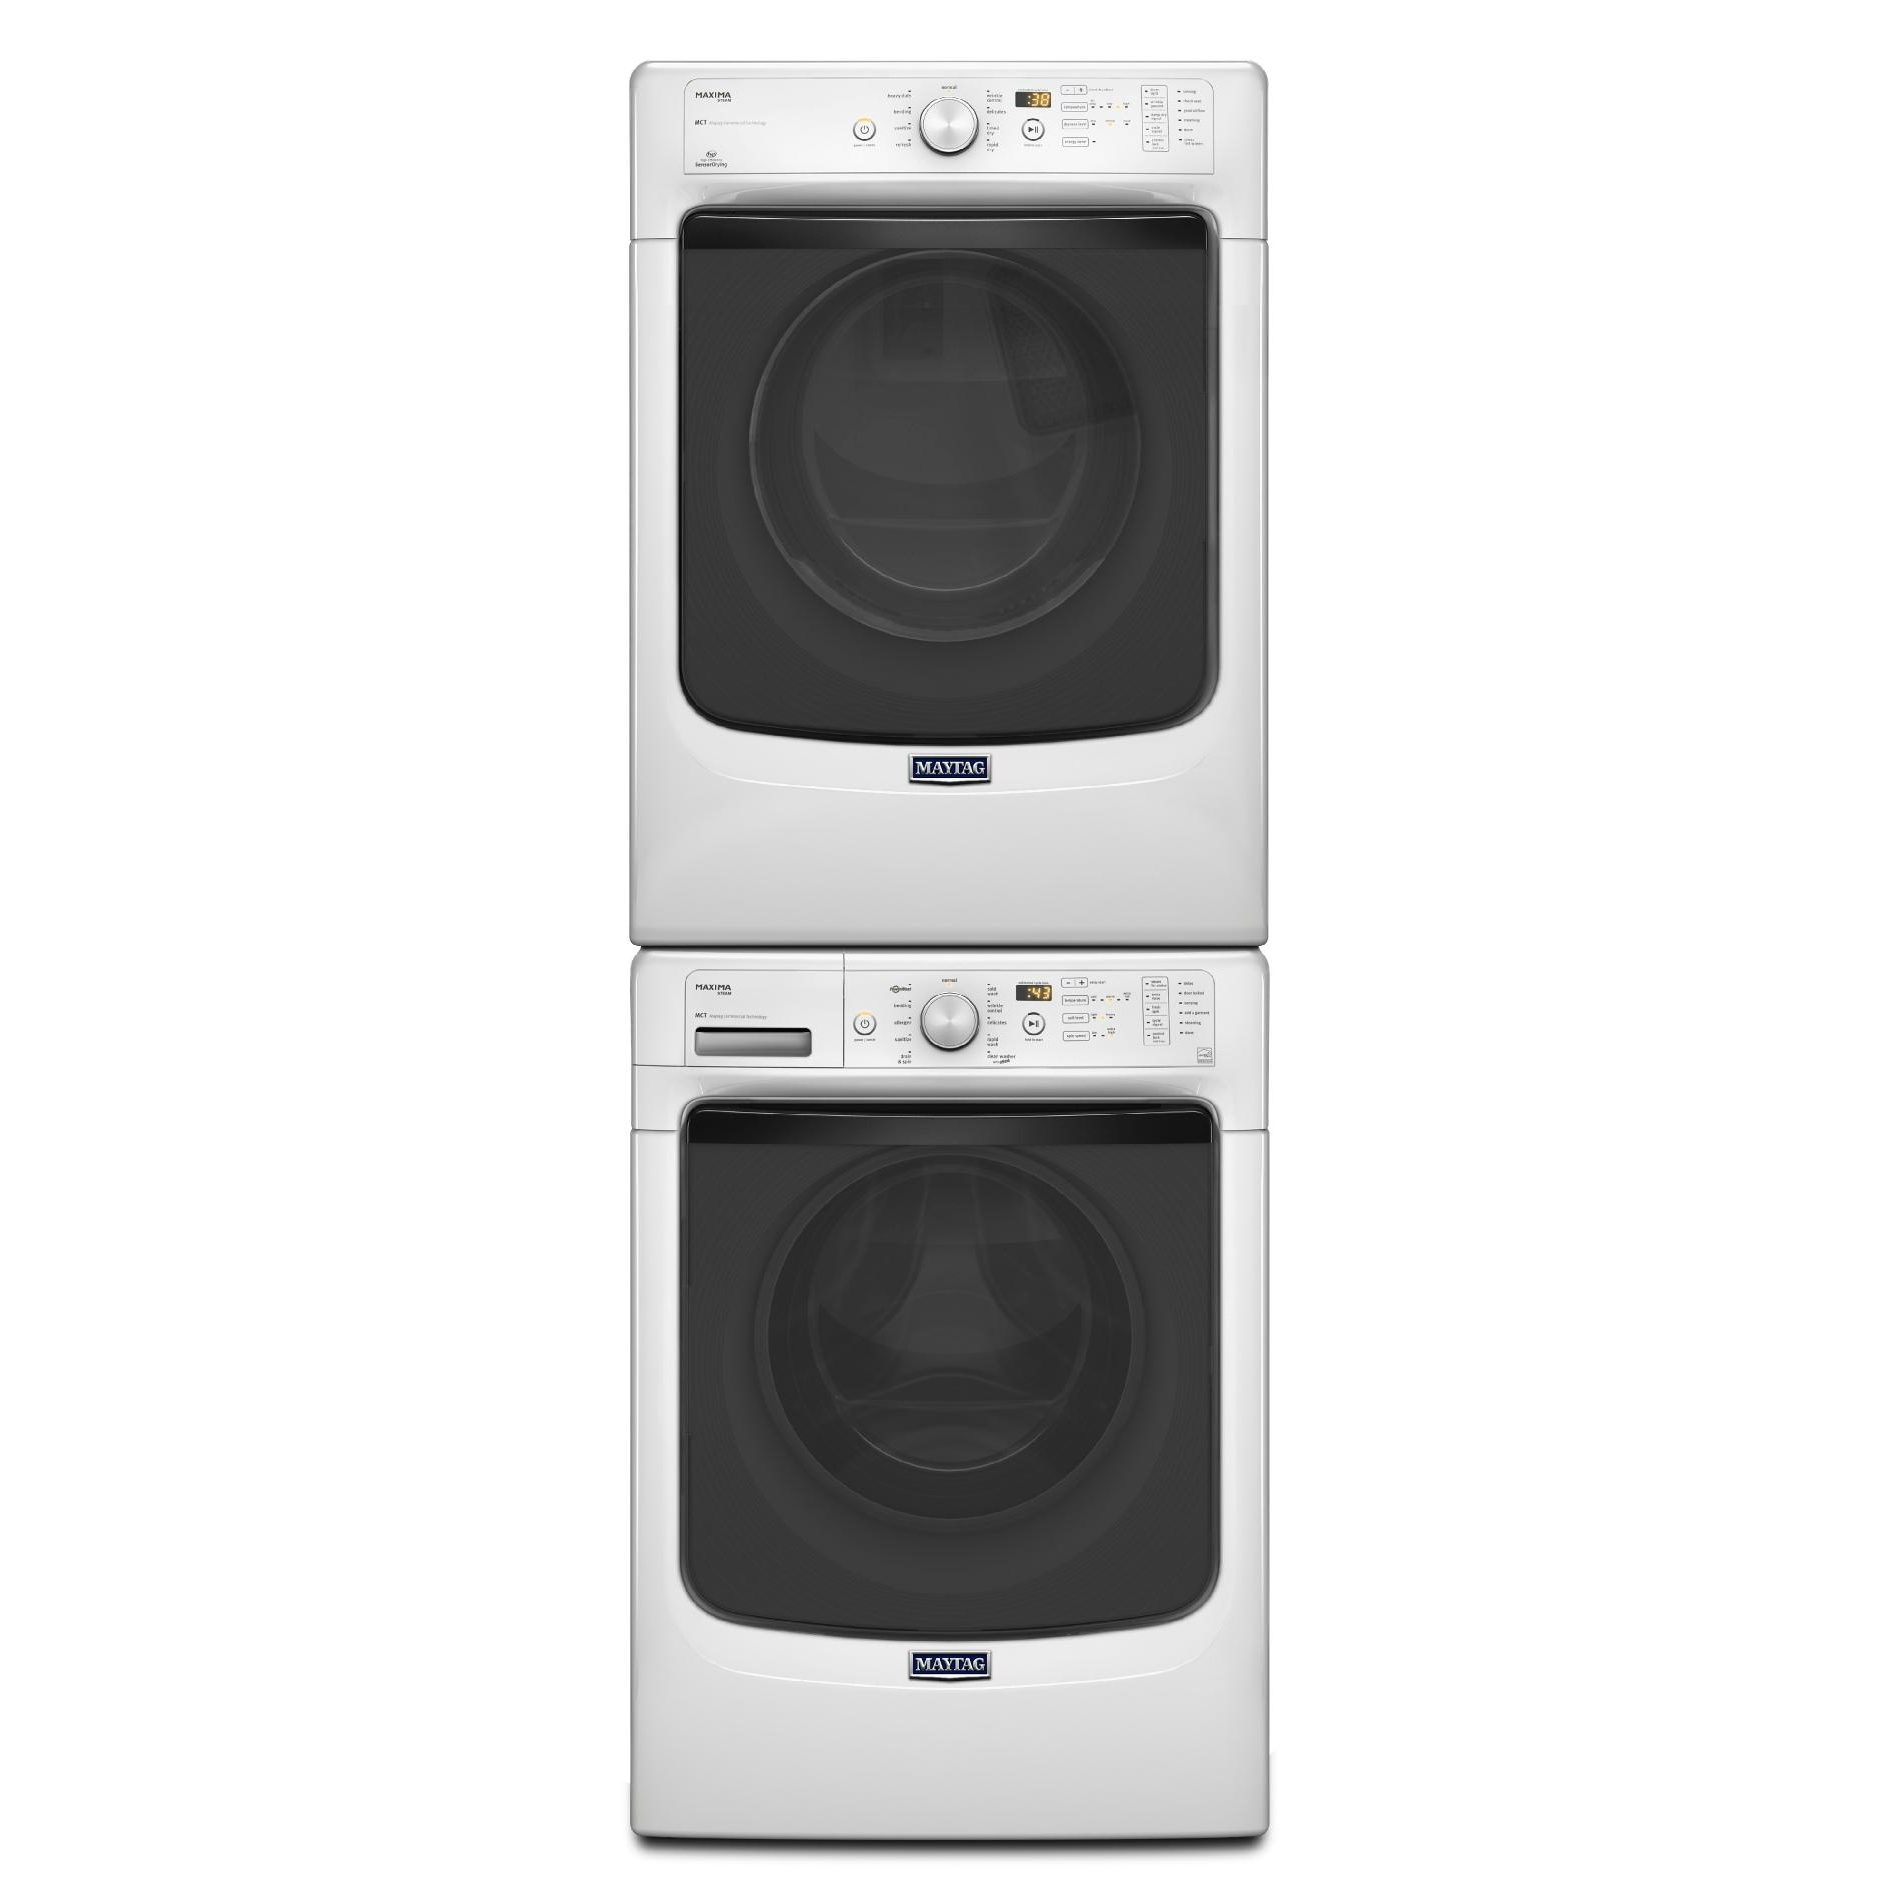 Maytag MED5100DW 7.4 cu. ft. Maxima® Electric Dryer w/ Steam Cycle - White